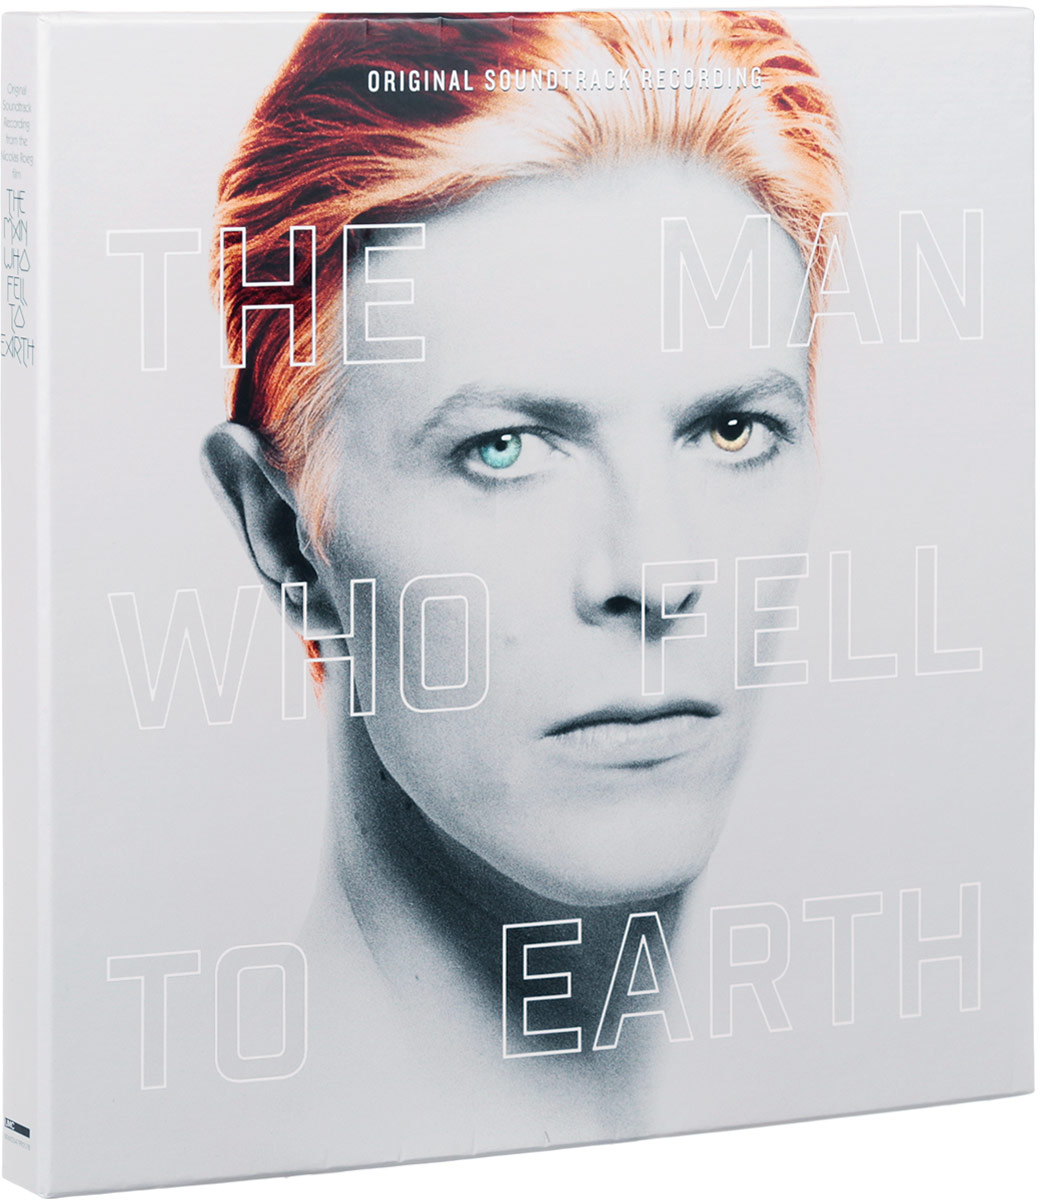 The Man Who Fell To Earth. Original Soundtrack Recording (2 LP + 2 CD)